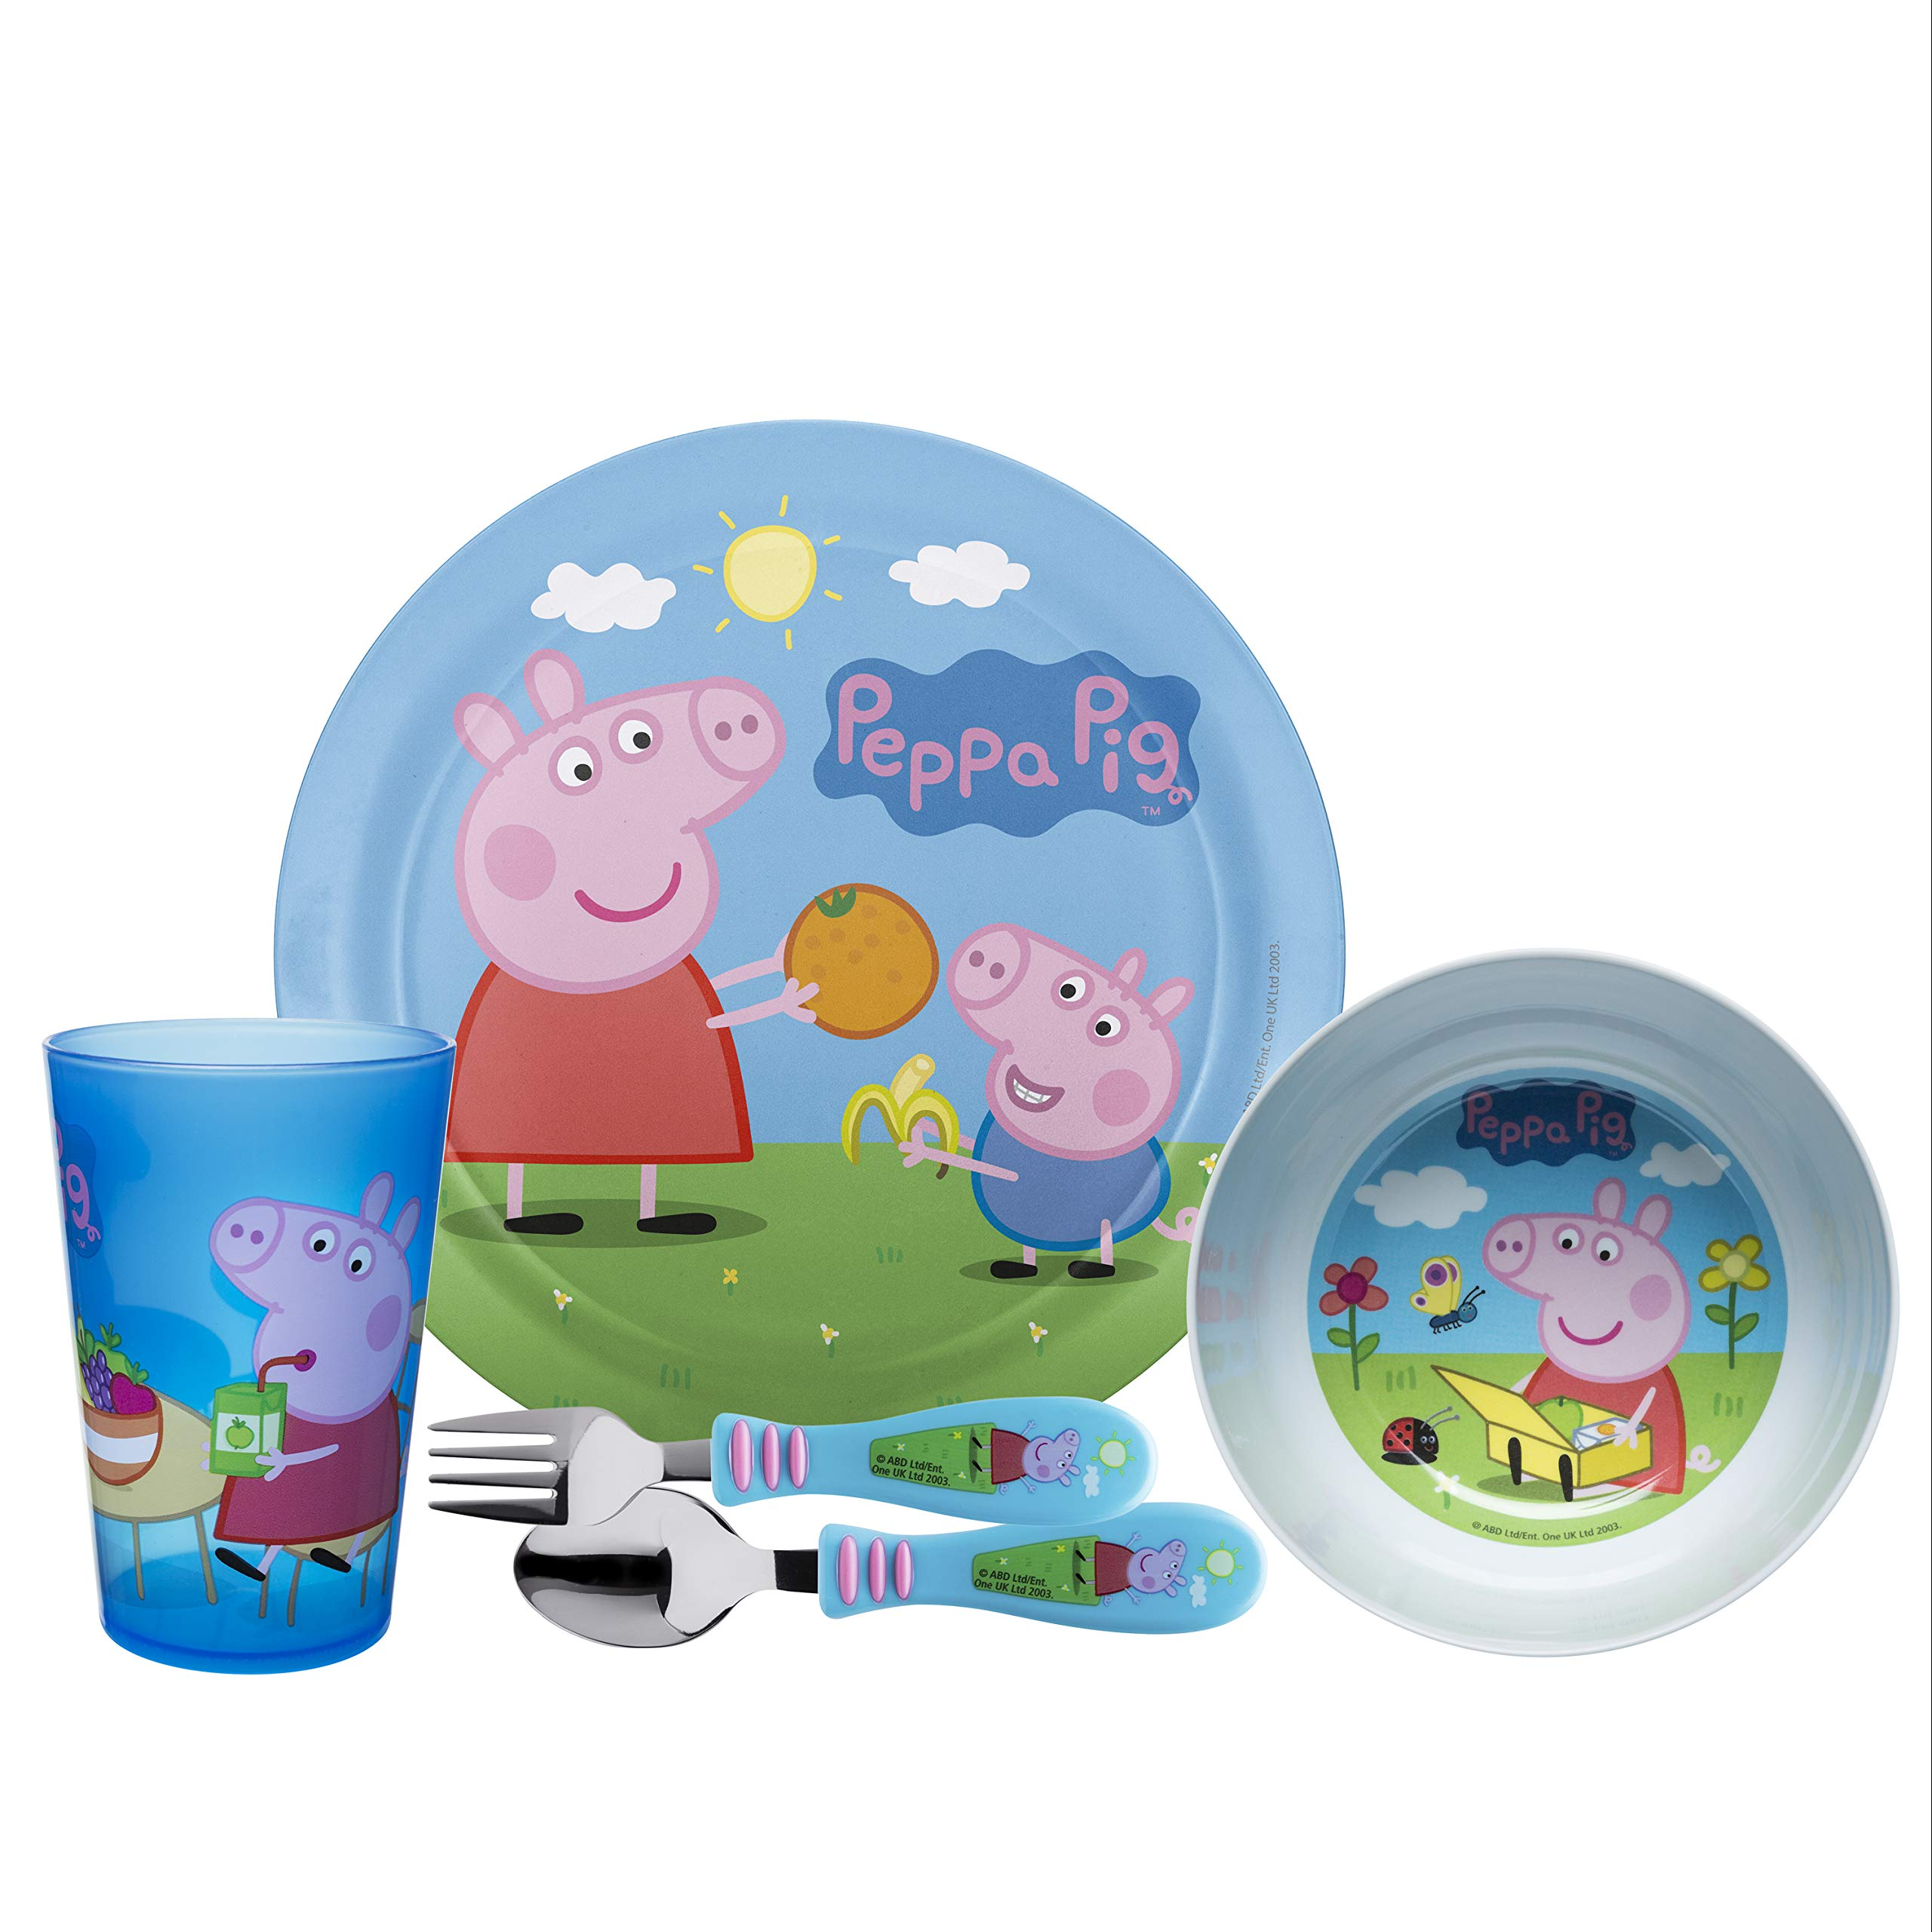 Zak Designs PEPE-5480-AMZ Nick Jr. Dinnerware Includes Plate, Bowl, Tumbler and Utensil Tableware, Made of Durable Material and Perfect for Kids (George Pig, 5 Piece Set, BPA-Free), Peppa 5pc by Zak Designs